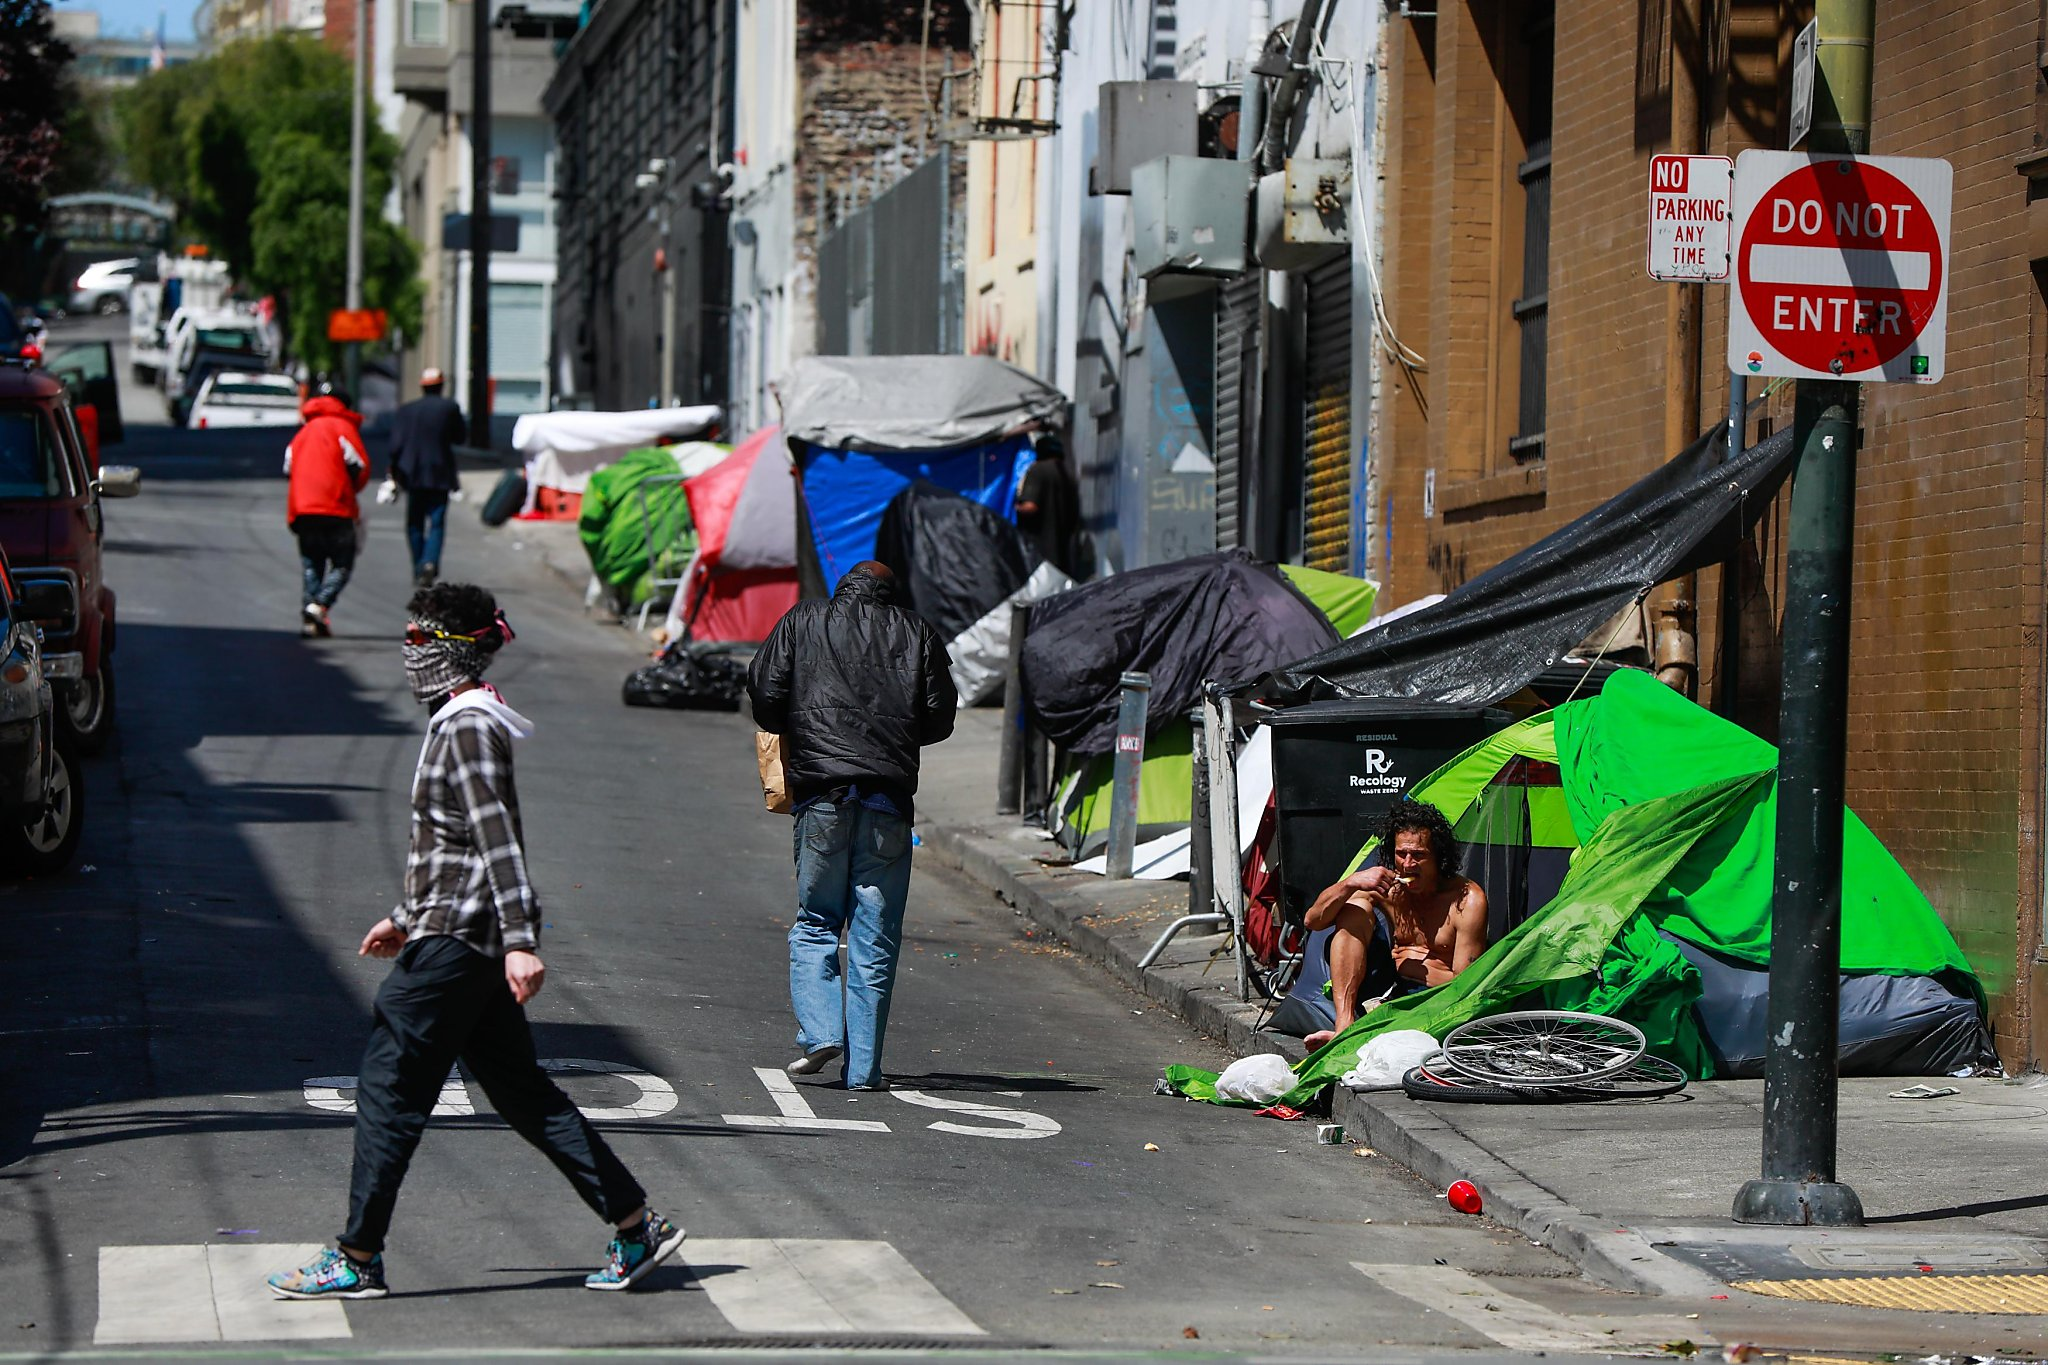 As if SF's Tenderloin didn't have enough problems, pulling out narcotics cops didn't help